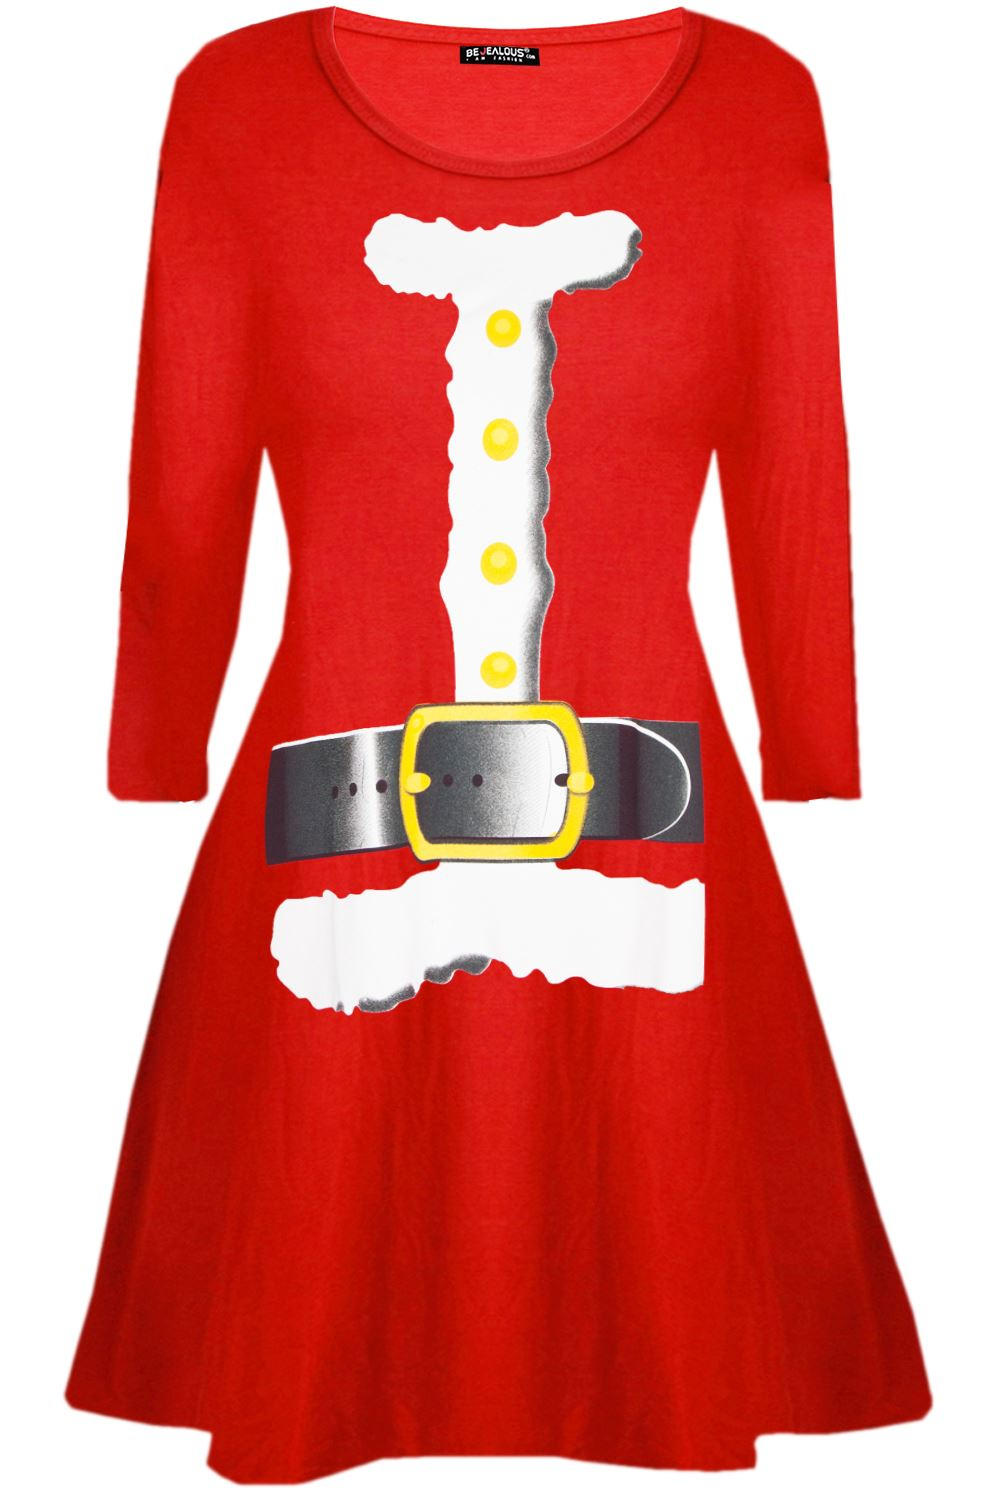 Womens-Ladies-Kids-Girls-Christmas-Xmas-Santa-Reindeer-Flared-Swing-Mini-Dress thumbnail 23